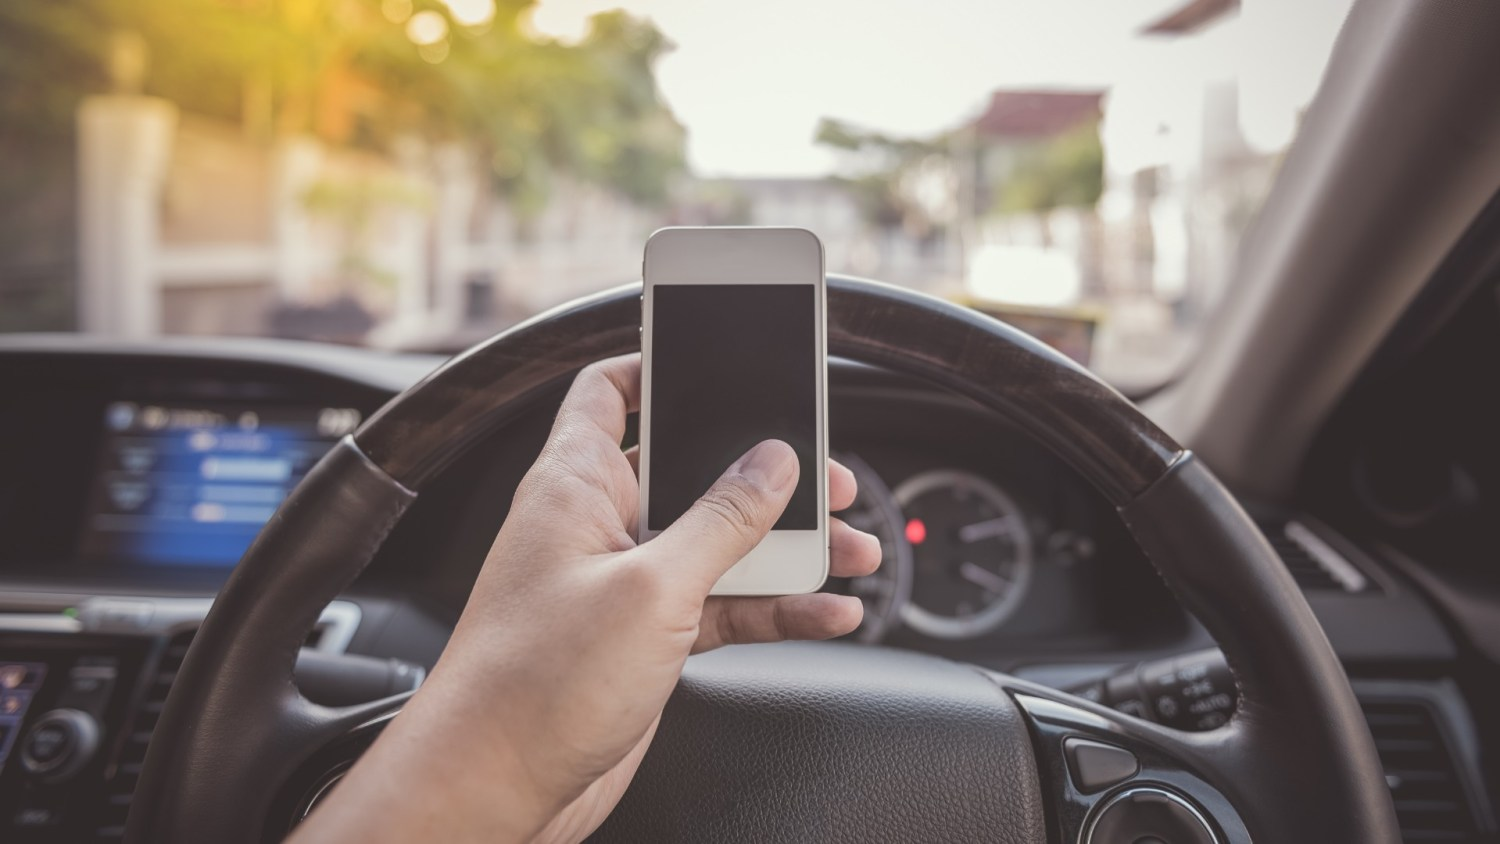 Calls for increased penalties for using phone while driving